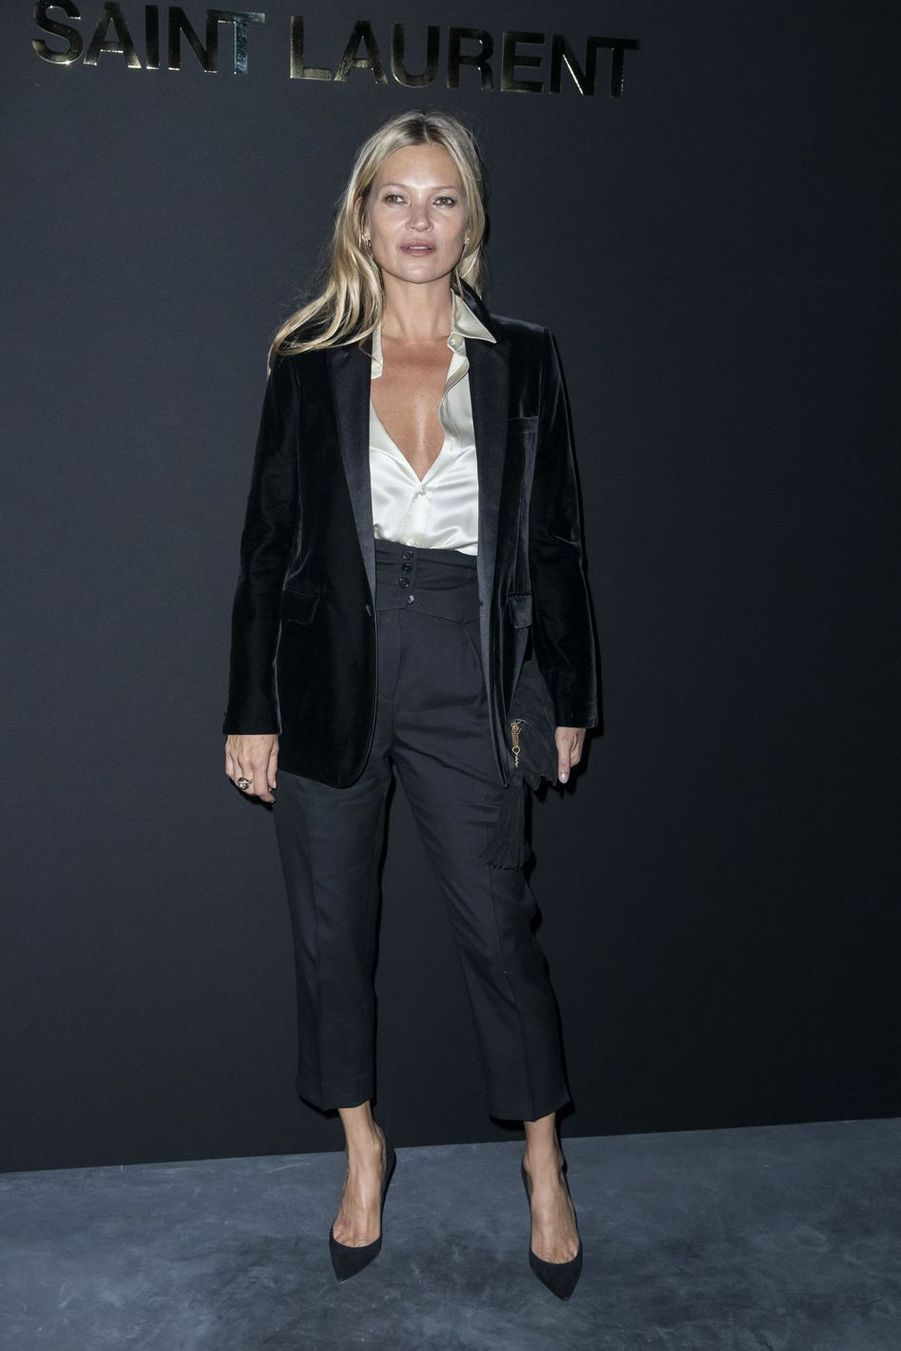 Kate Moss au défilé Saint Laurent lors de la Fashion Week de Paris le 26 février 2019